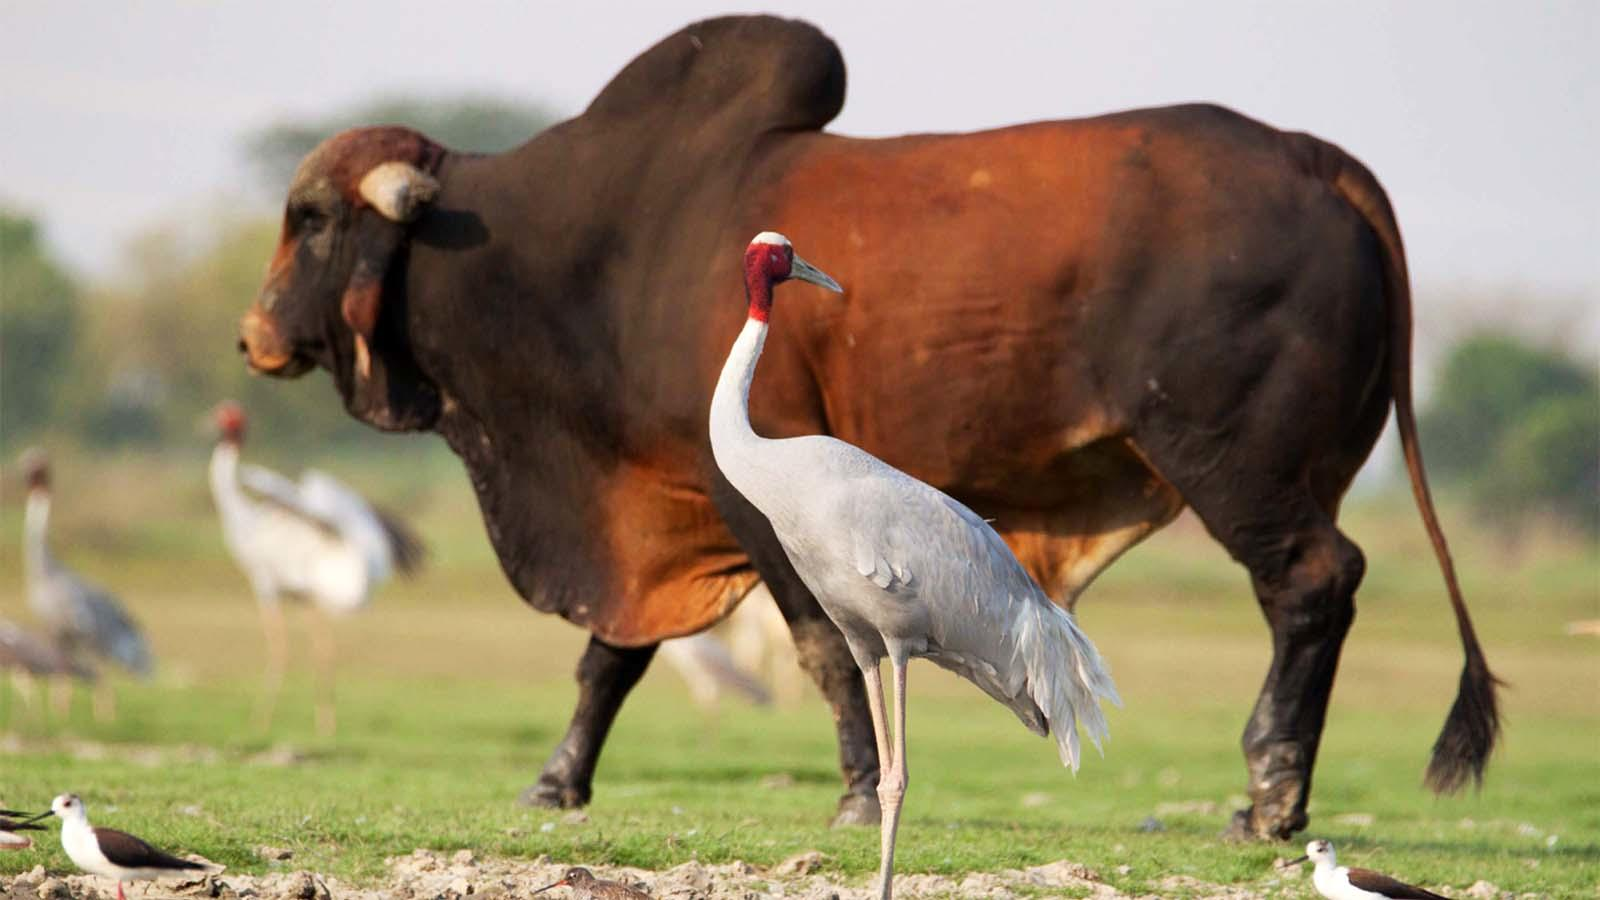 The stray cattle menace could drive away migratory birds from Bharatpur sanctuary, according to ecologists